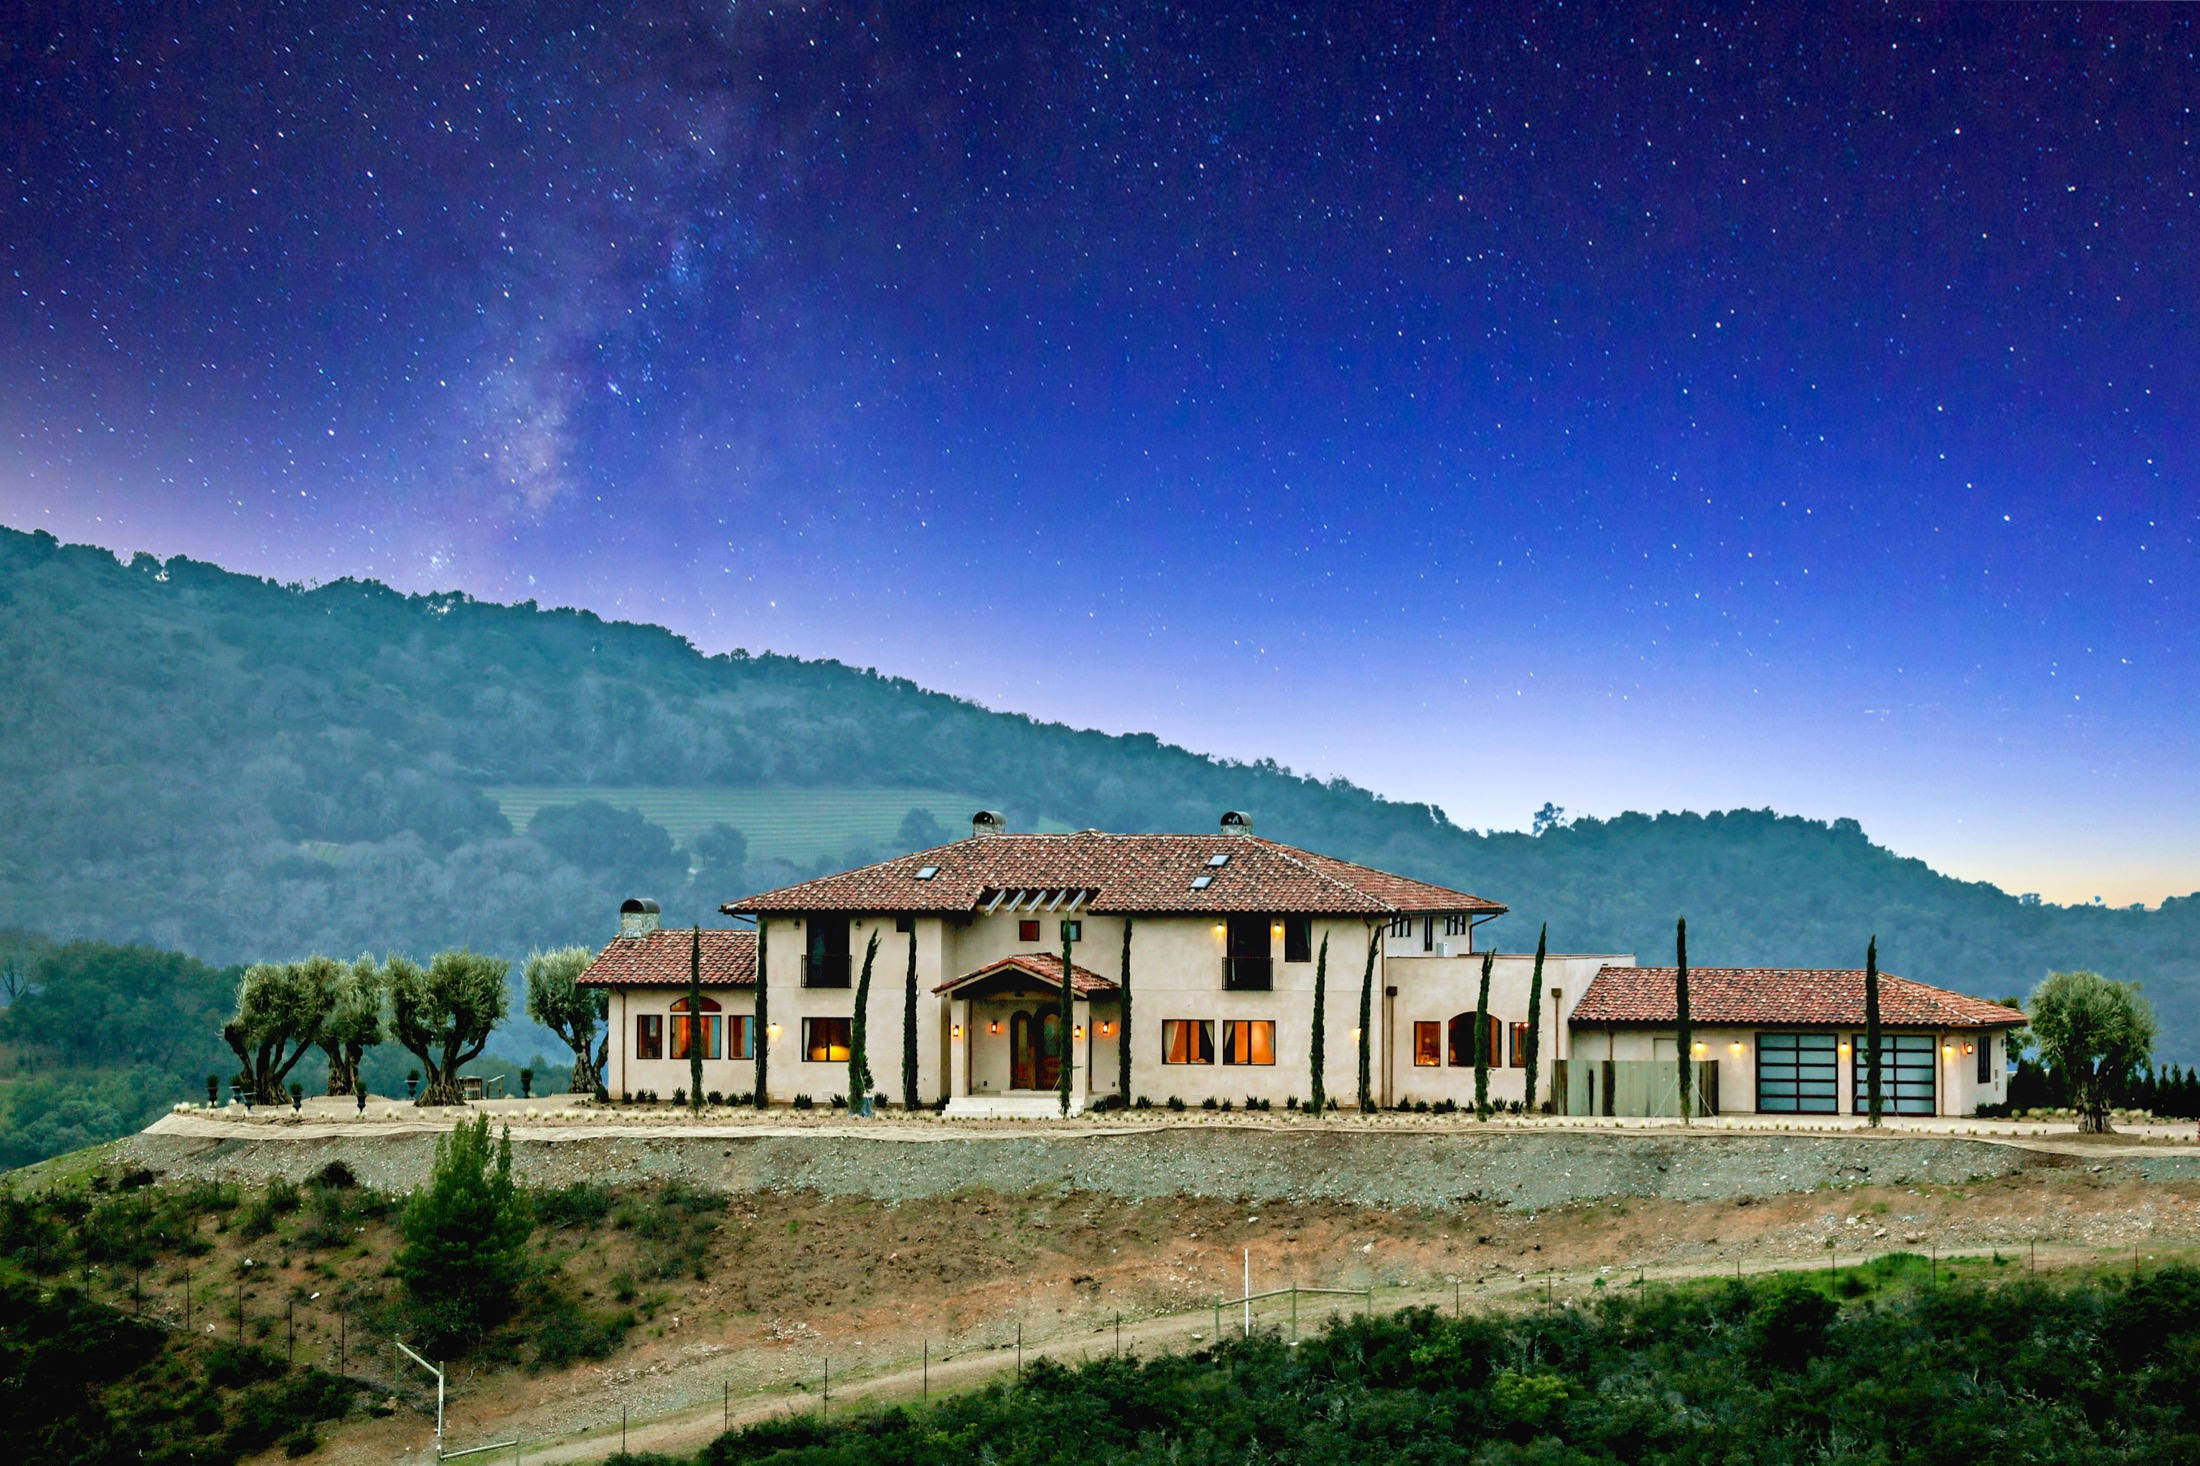 Single Family Home for Sale at Napa Valley Estate with Panoramic Views 189 Reserve Road St. Helena, California 94574 United States